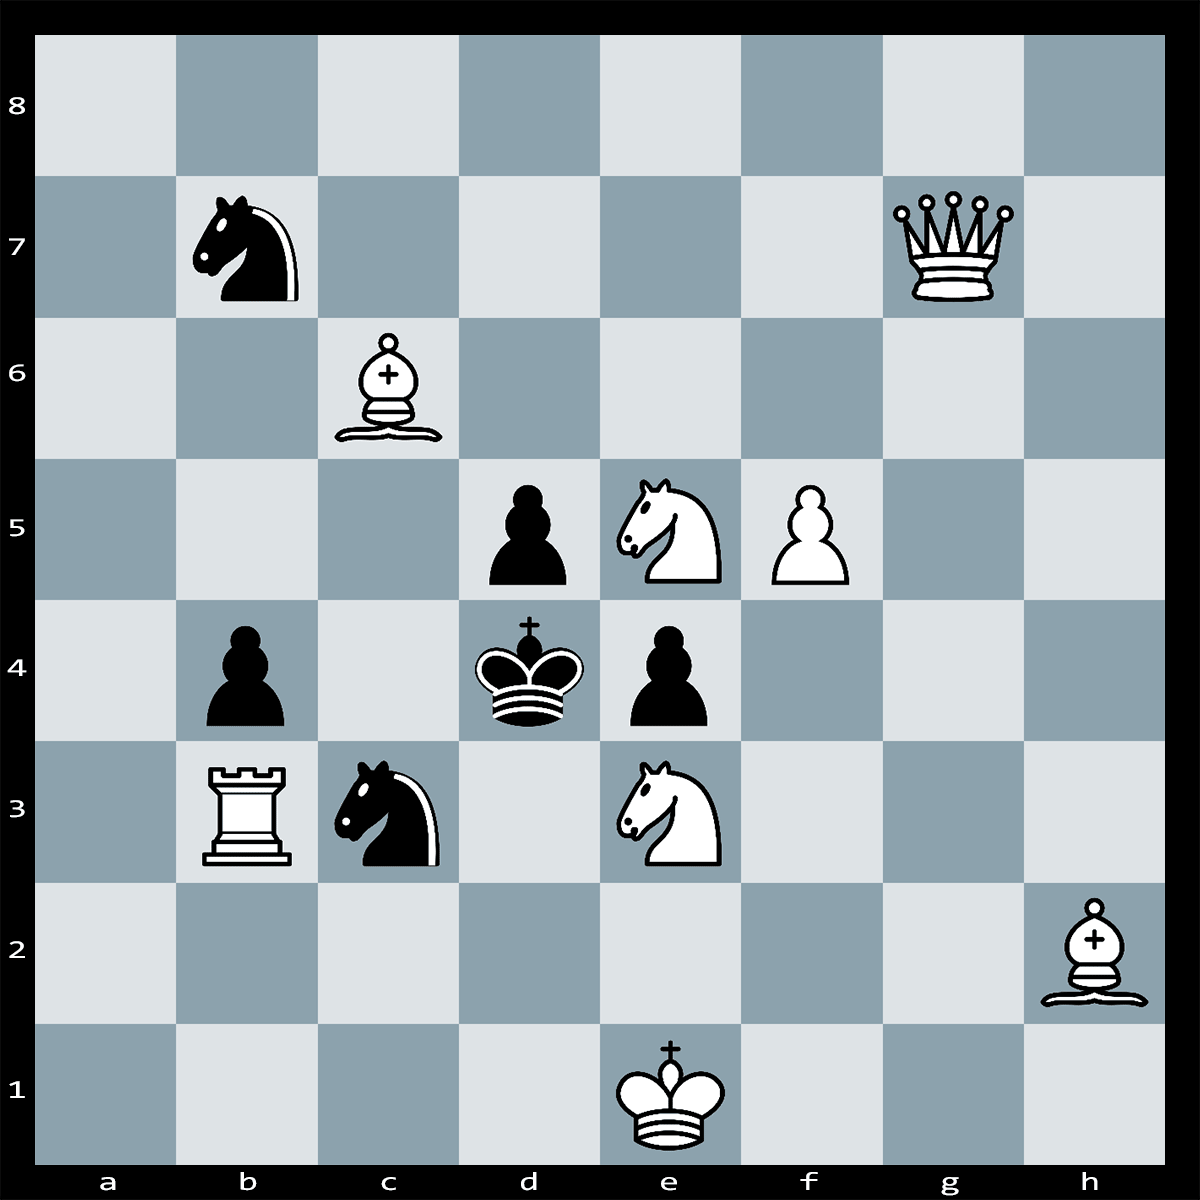 Mate in Two Moves, White to Play - Chess Puzzle #65